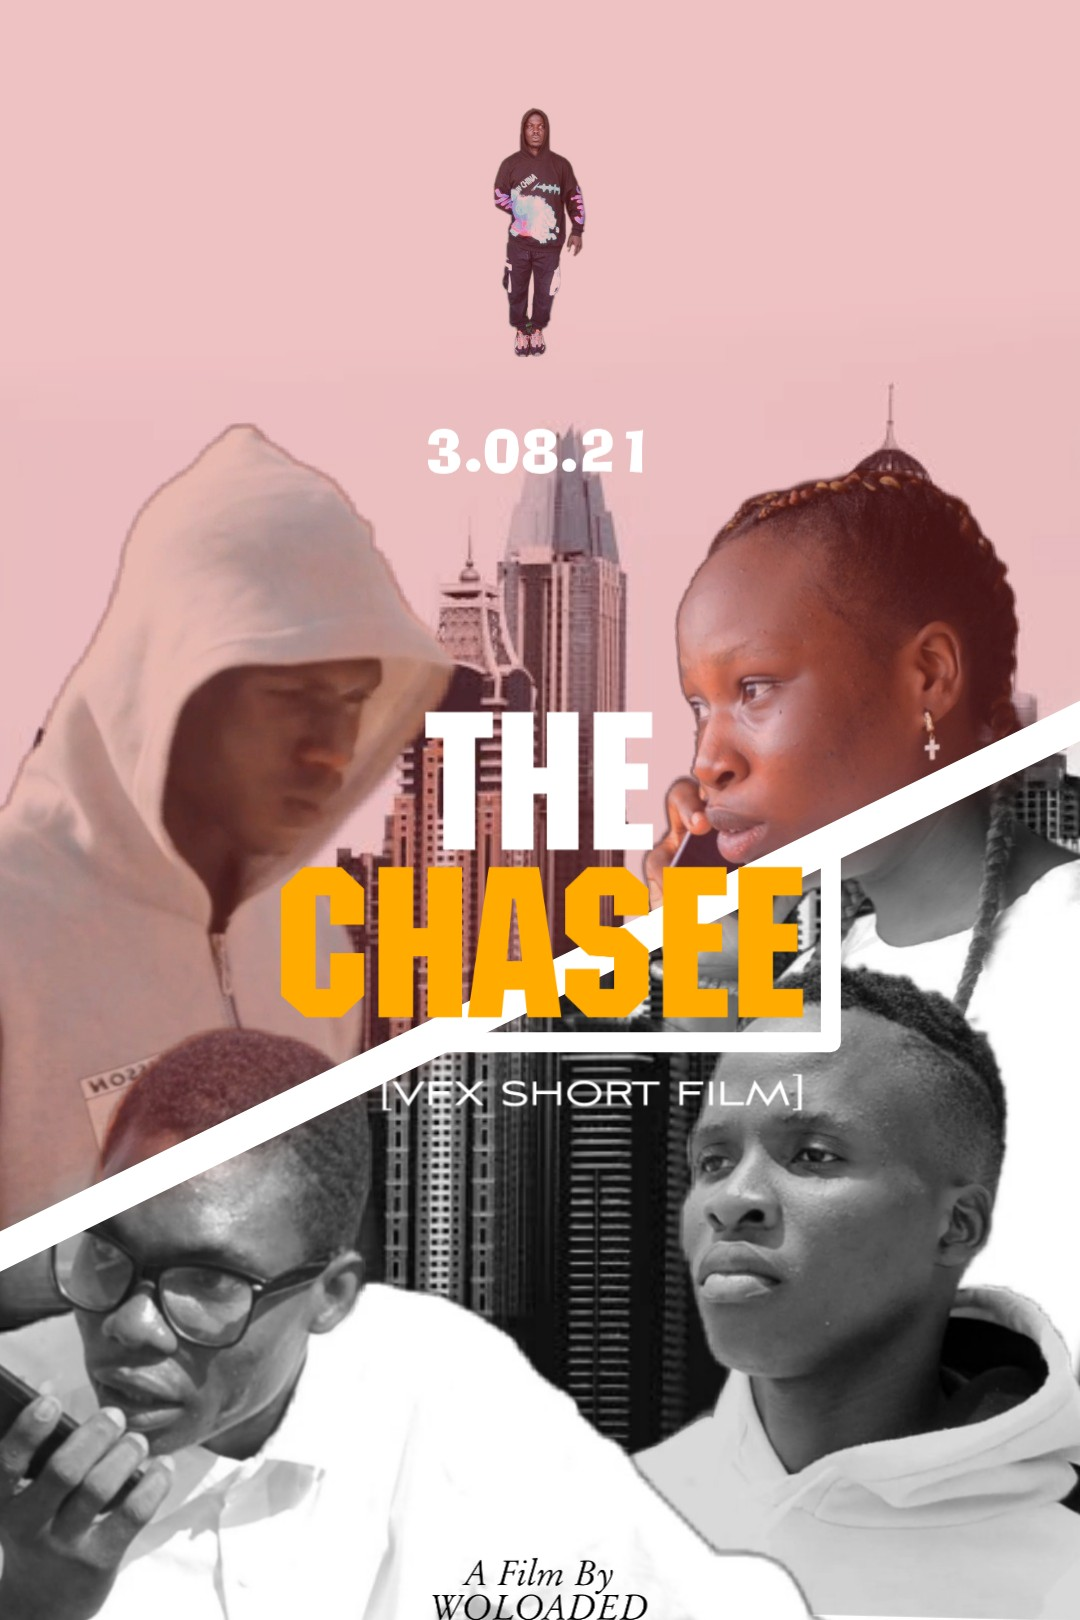 Title [VFX Short Film] THE CHASEE